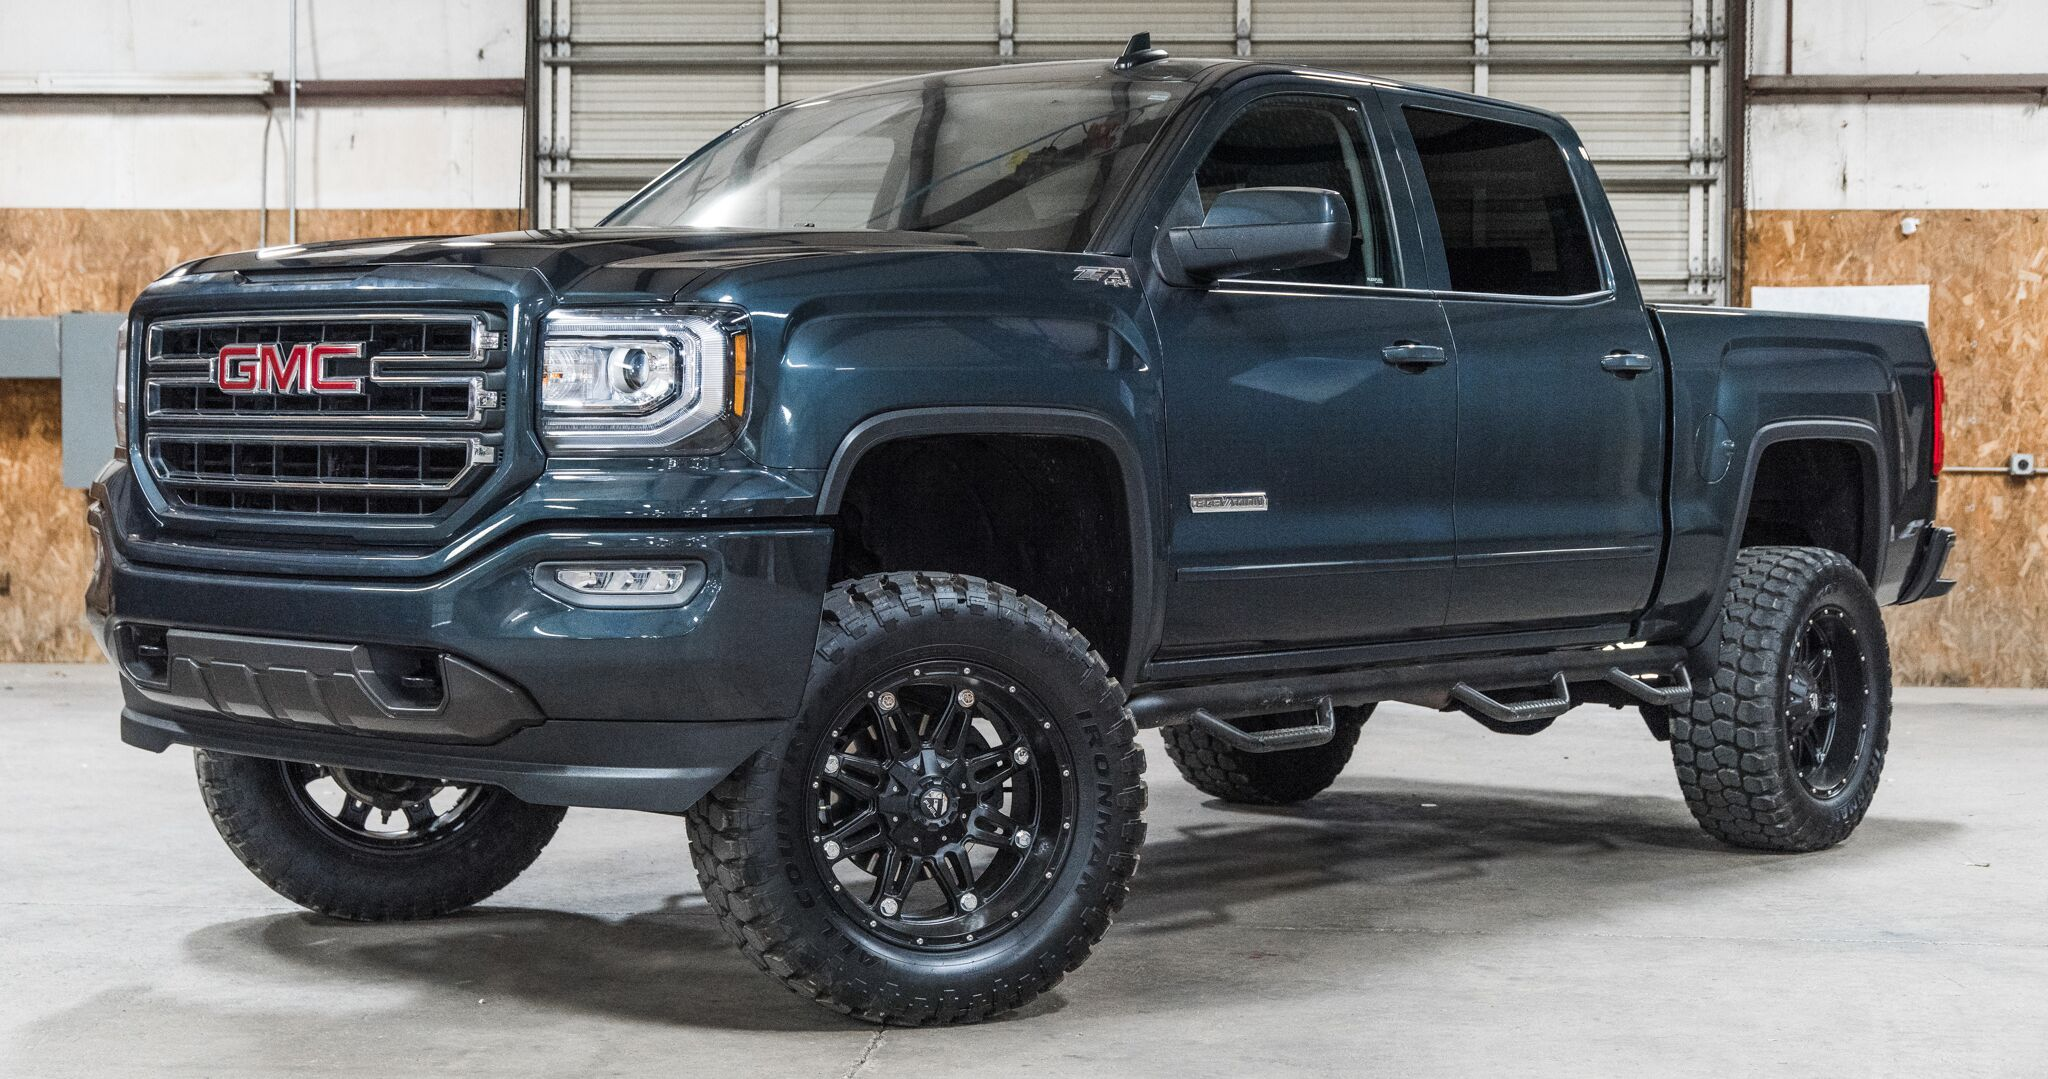 Sold Stock 9091 Lifted 2018 Gmc Sierra 1500 4x4 Crew Cab Sle Z71